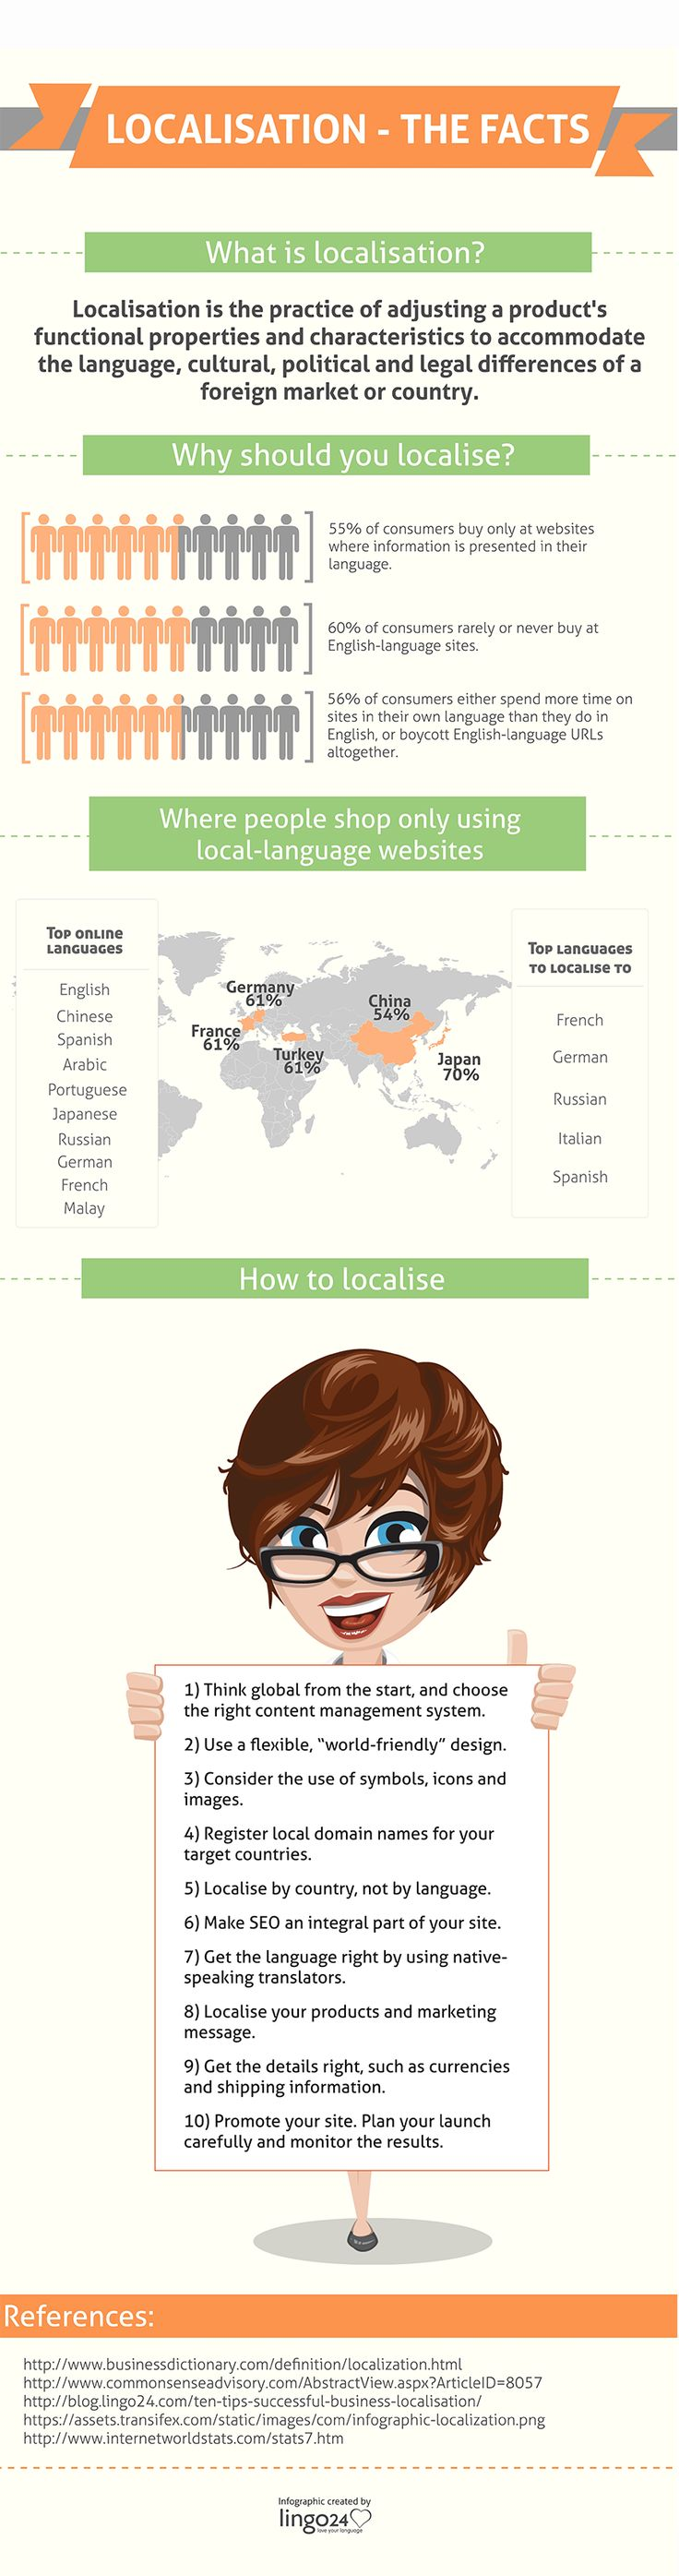 """The term """"localisation"""" has been used frequently in our industry for many years now. But it's time for it to shake off the stigma of it just being another marketing buzzword, and grow up to be a fully-fledged business word, able to prove its worth in boardroom conversations. Our new #infographic shows why..."""